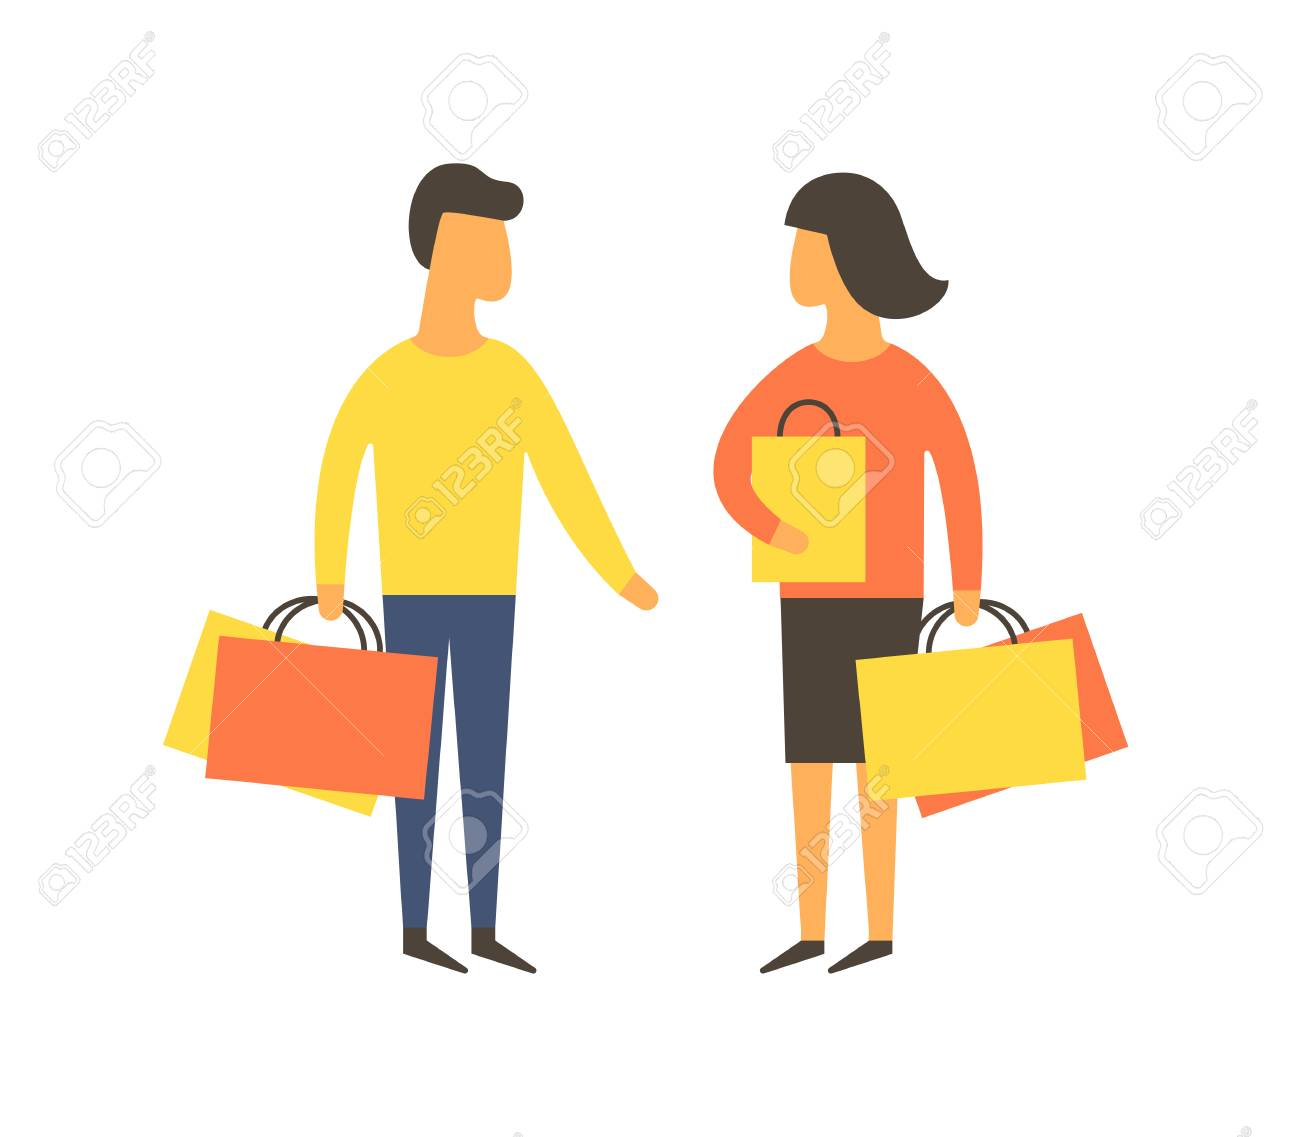 shopping people with bags vector illustration royalty free cliparts rh 123rf com shopping victoria texas shopping victoria british columbia